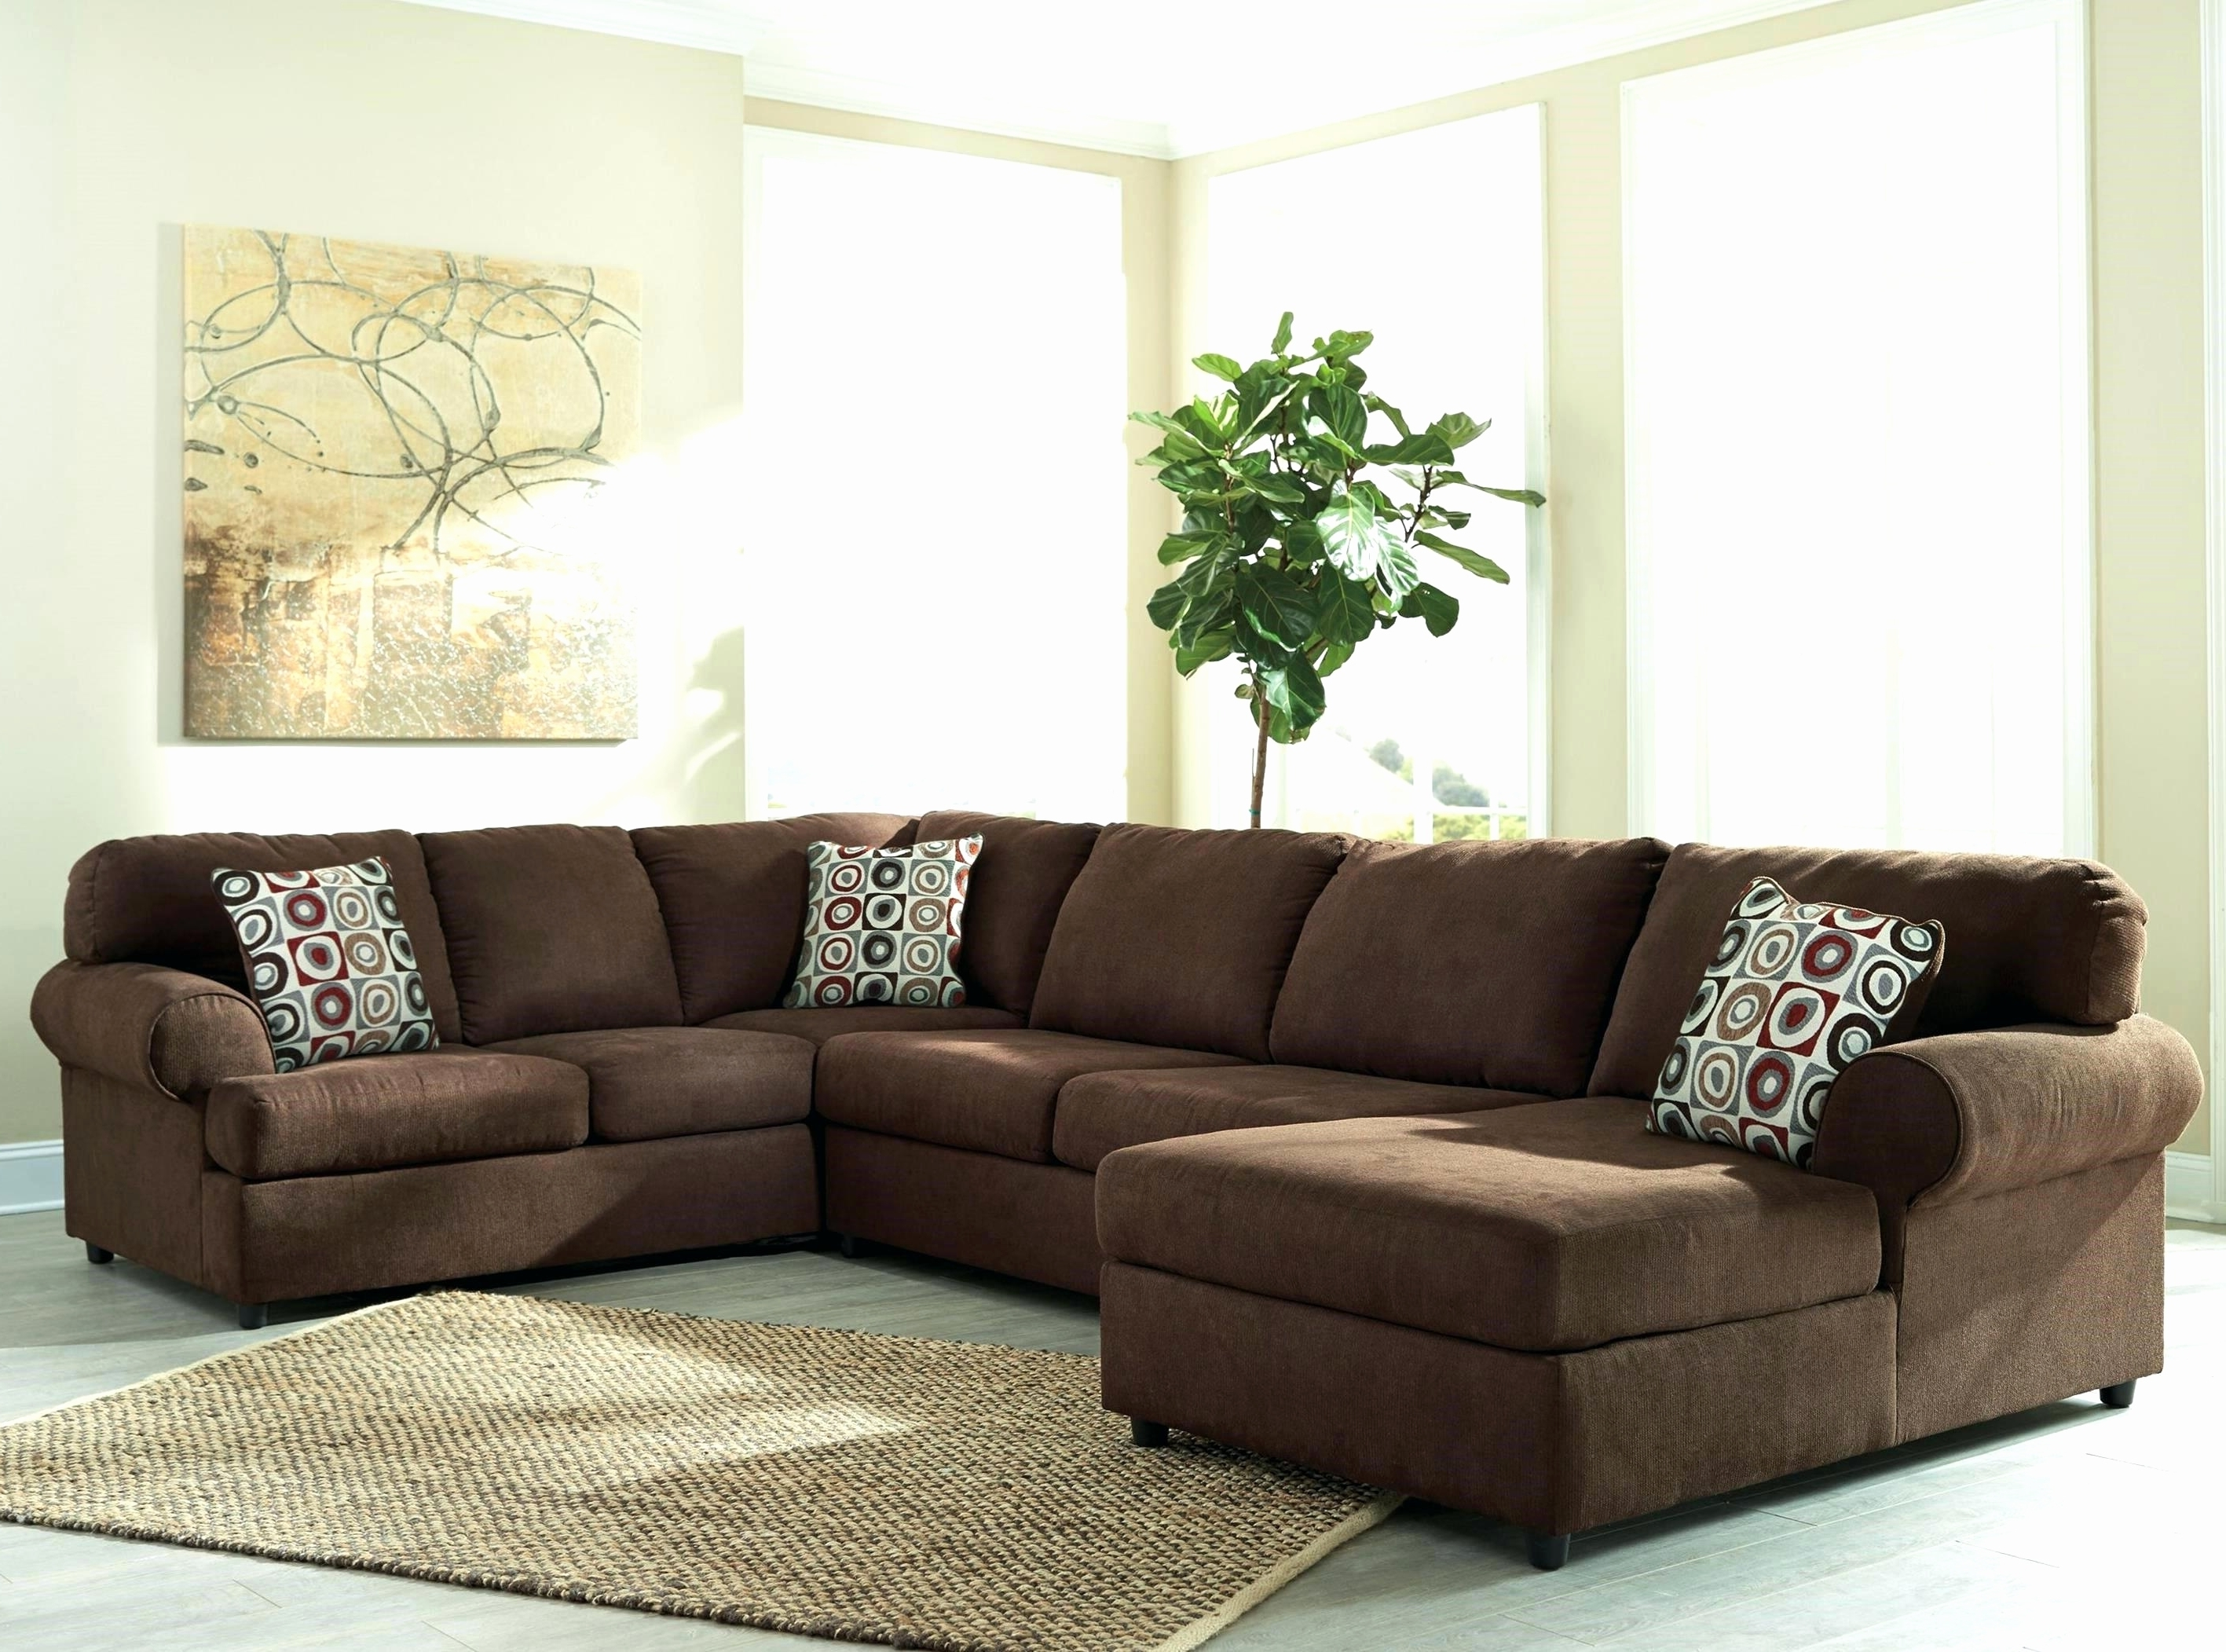 Sectional Sofas At Raymour And Flanigan With Popular Unique Raymour And Flanigan Living Room 2018 – Couches And Sofas Ideas (View 14 of 20)